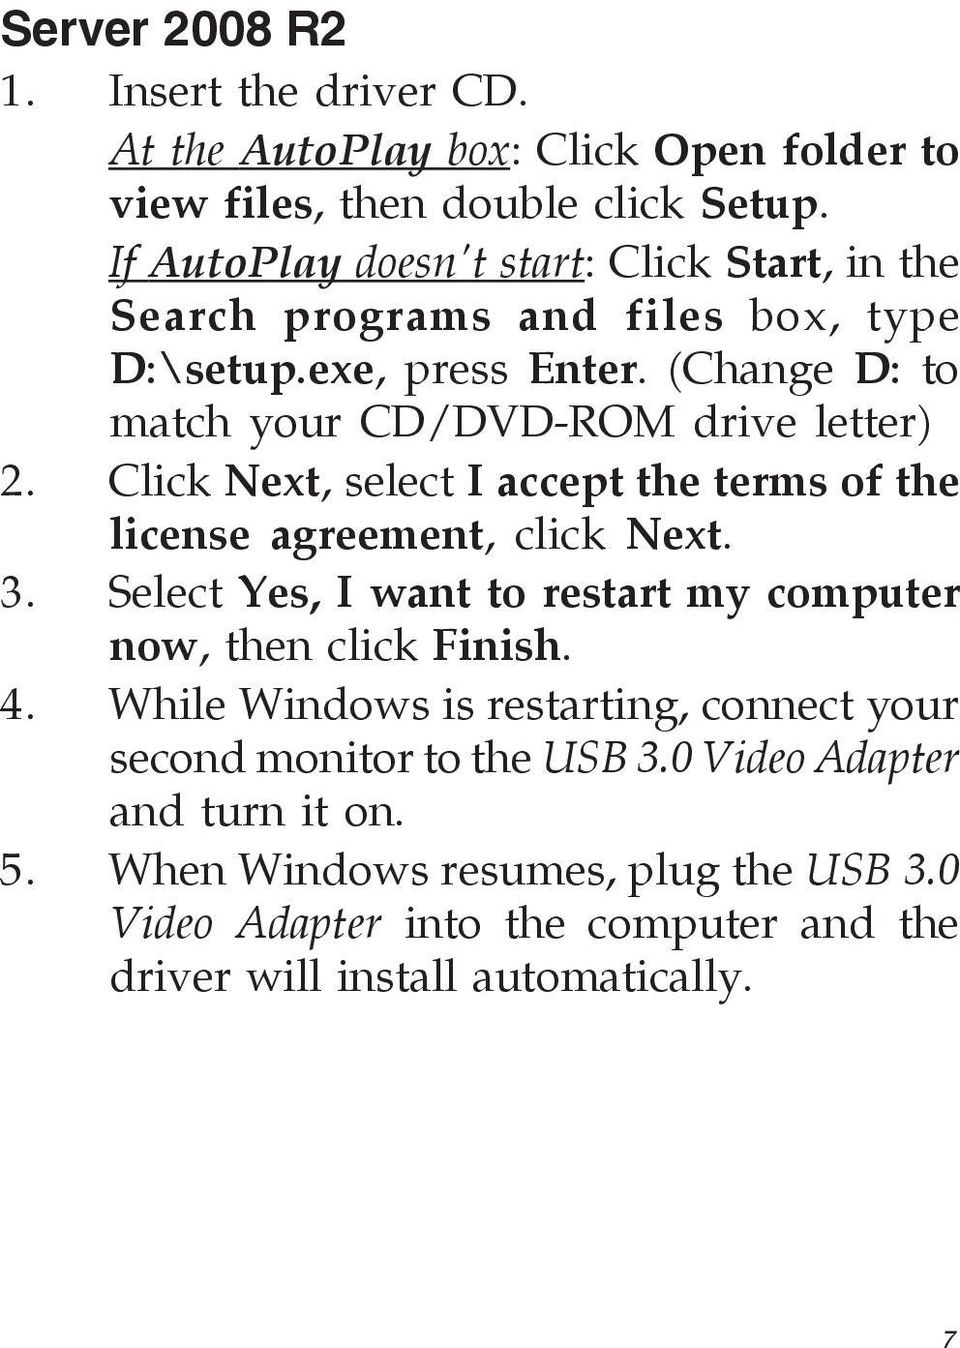 Click Next, select I accept the terms of the license agreement, click Next. 3. Select Yes, I want to restart my computer now, then click Finish. 4.